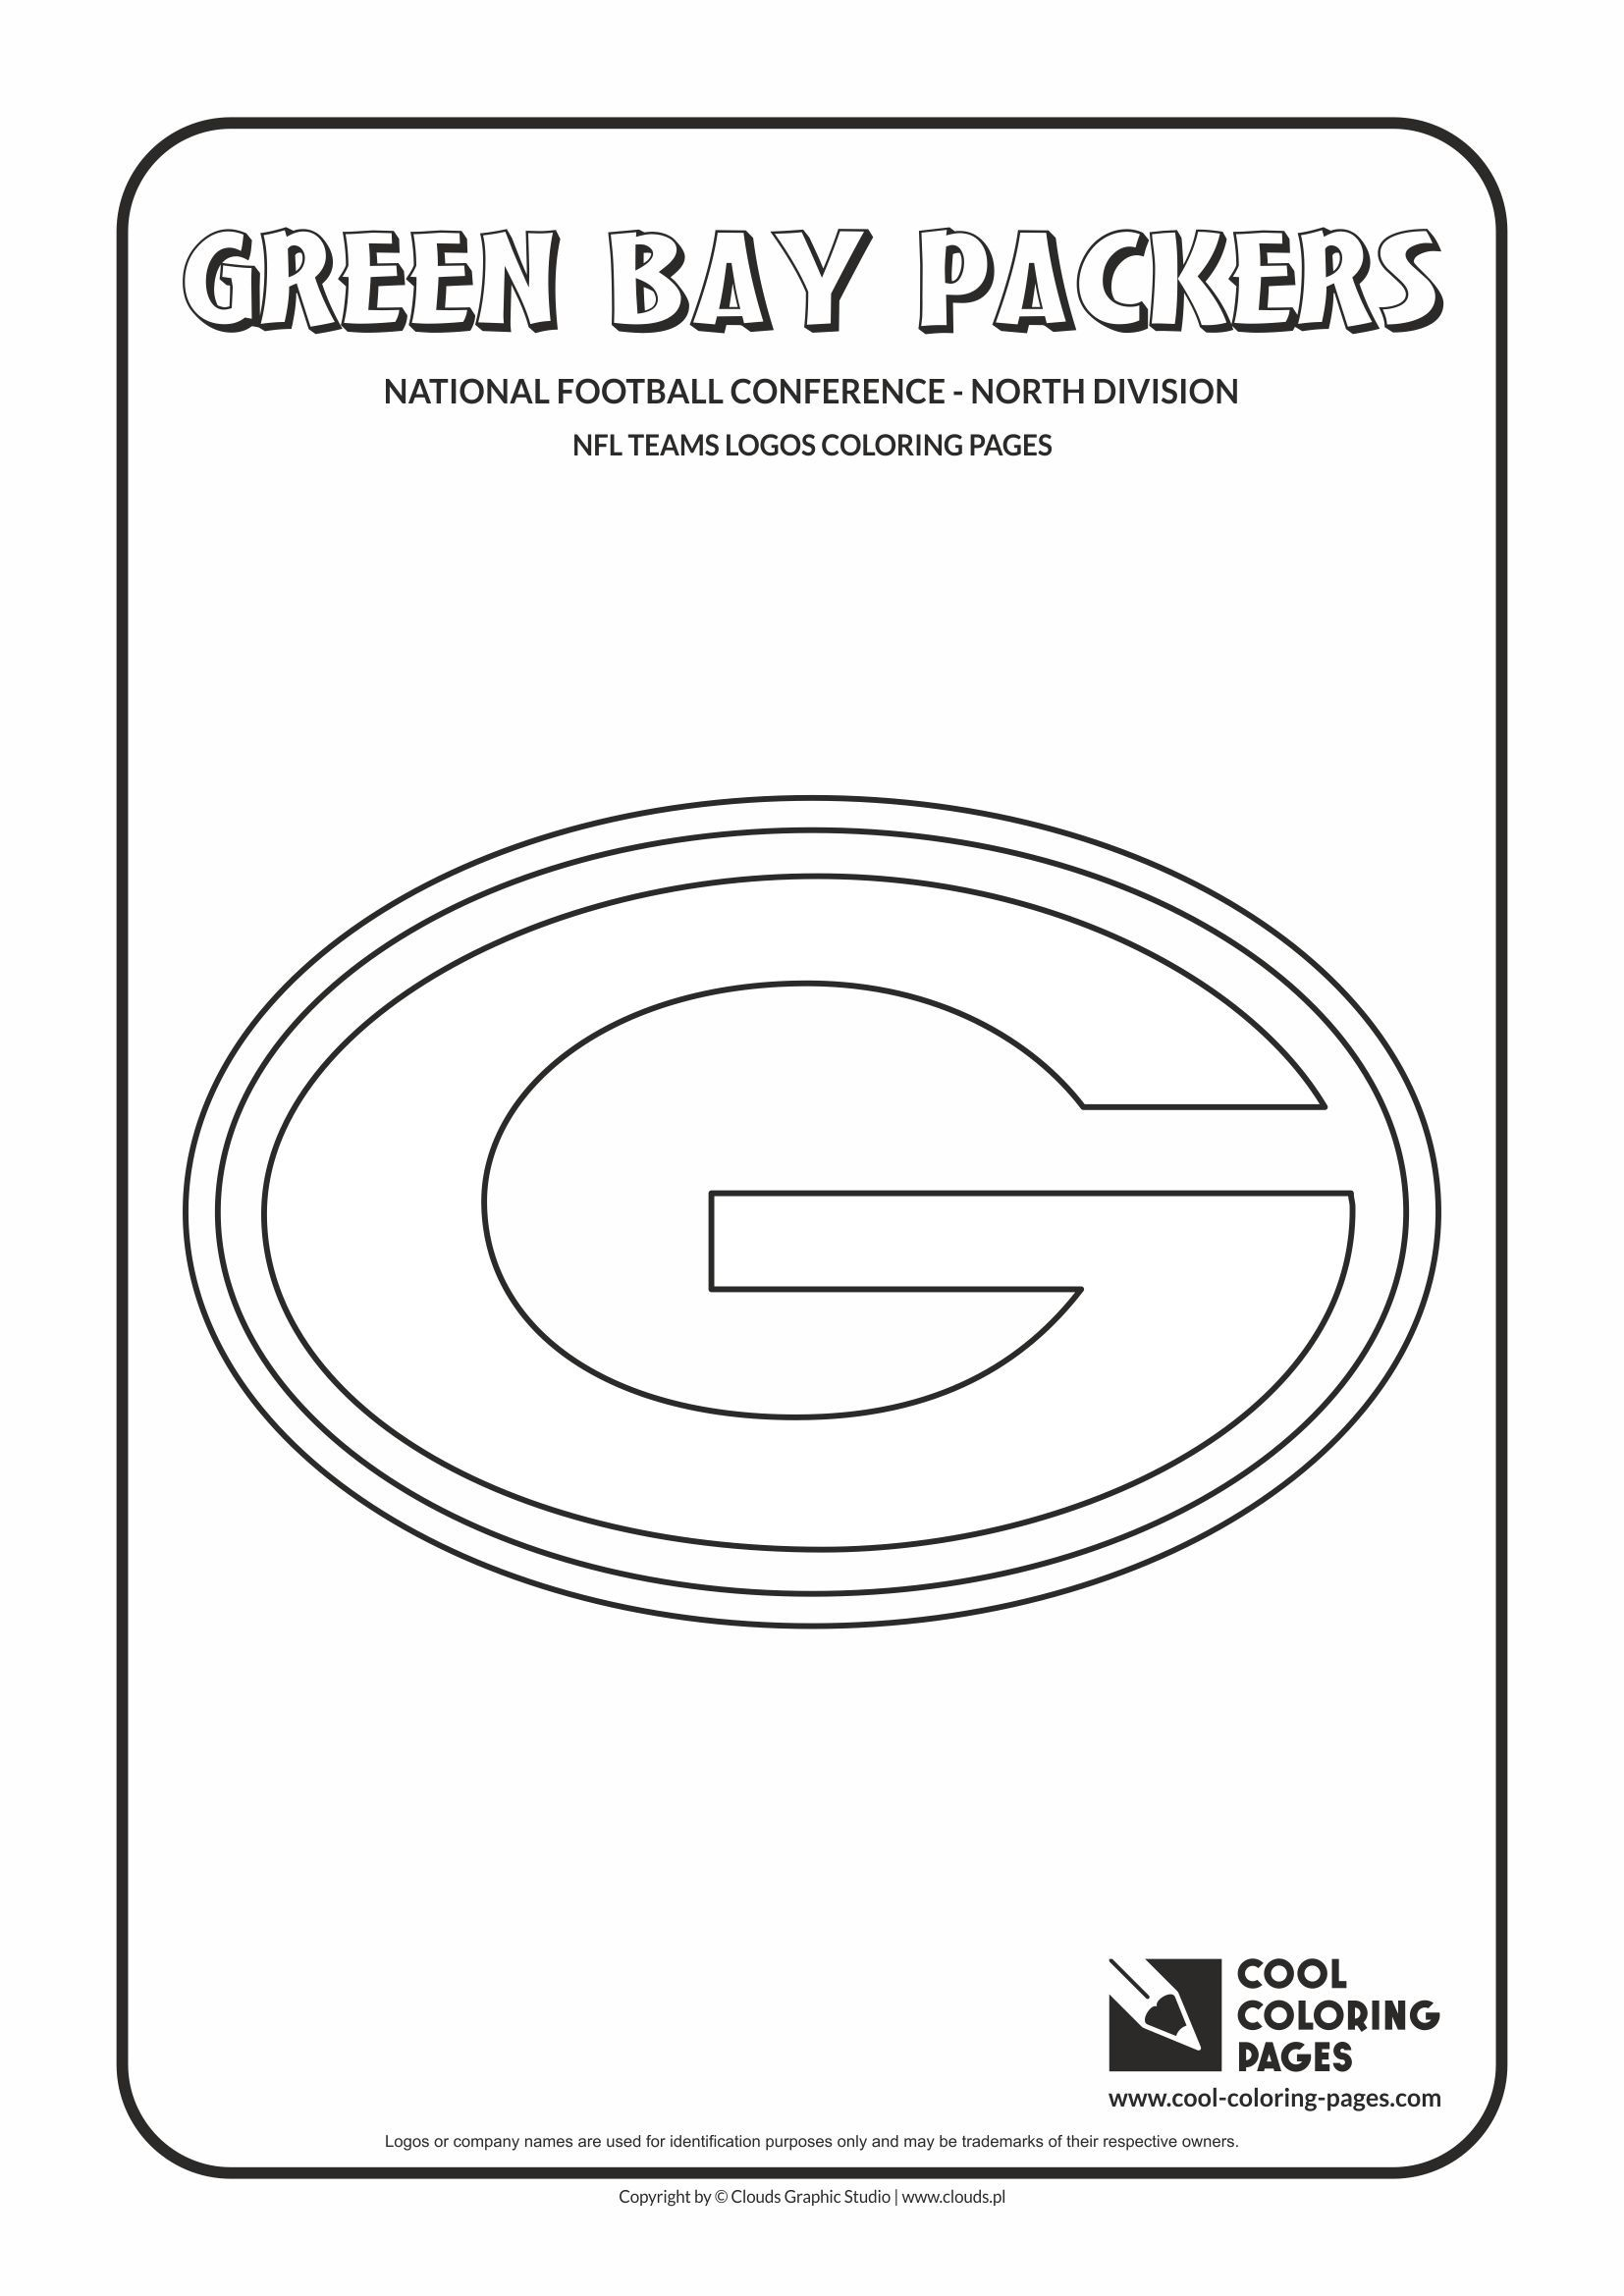 Cool Coloring Pages Nfl American Football Clubs Logos National Football Football Coloring Pages Nfl Teams Logos Football Team Logos